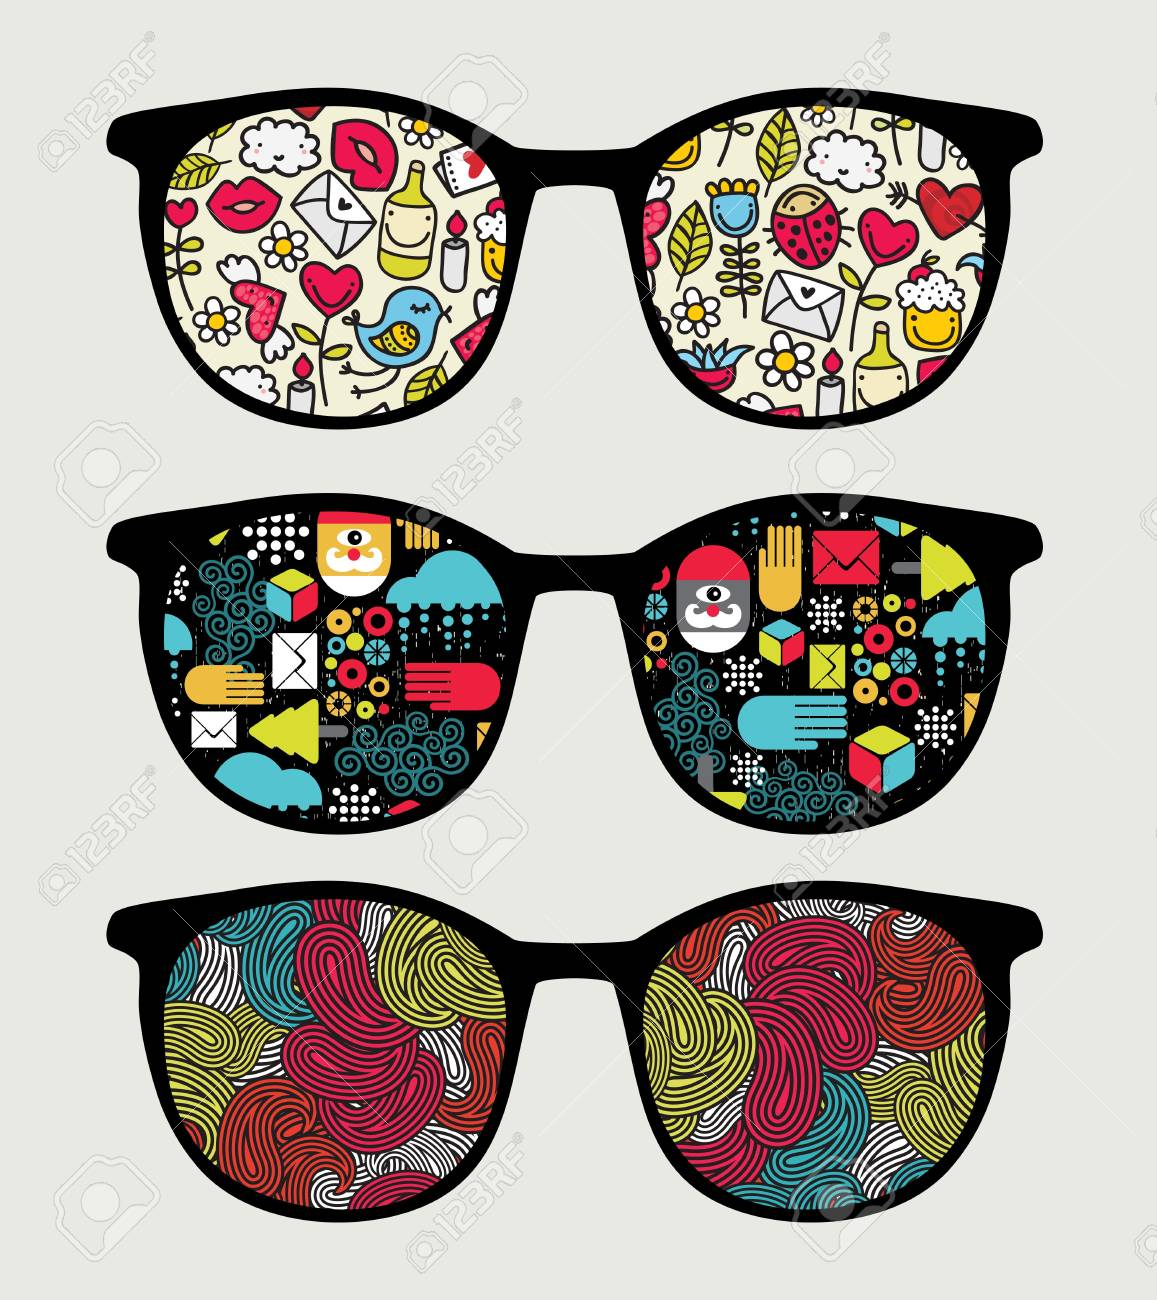 Retro sunglasses with reflection in it Stock Vector - 17533741